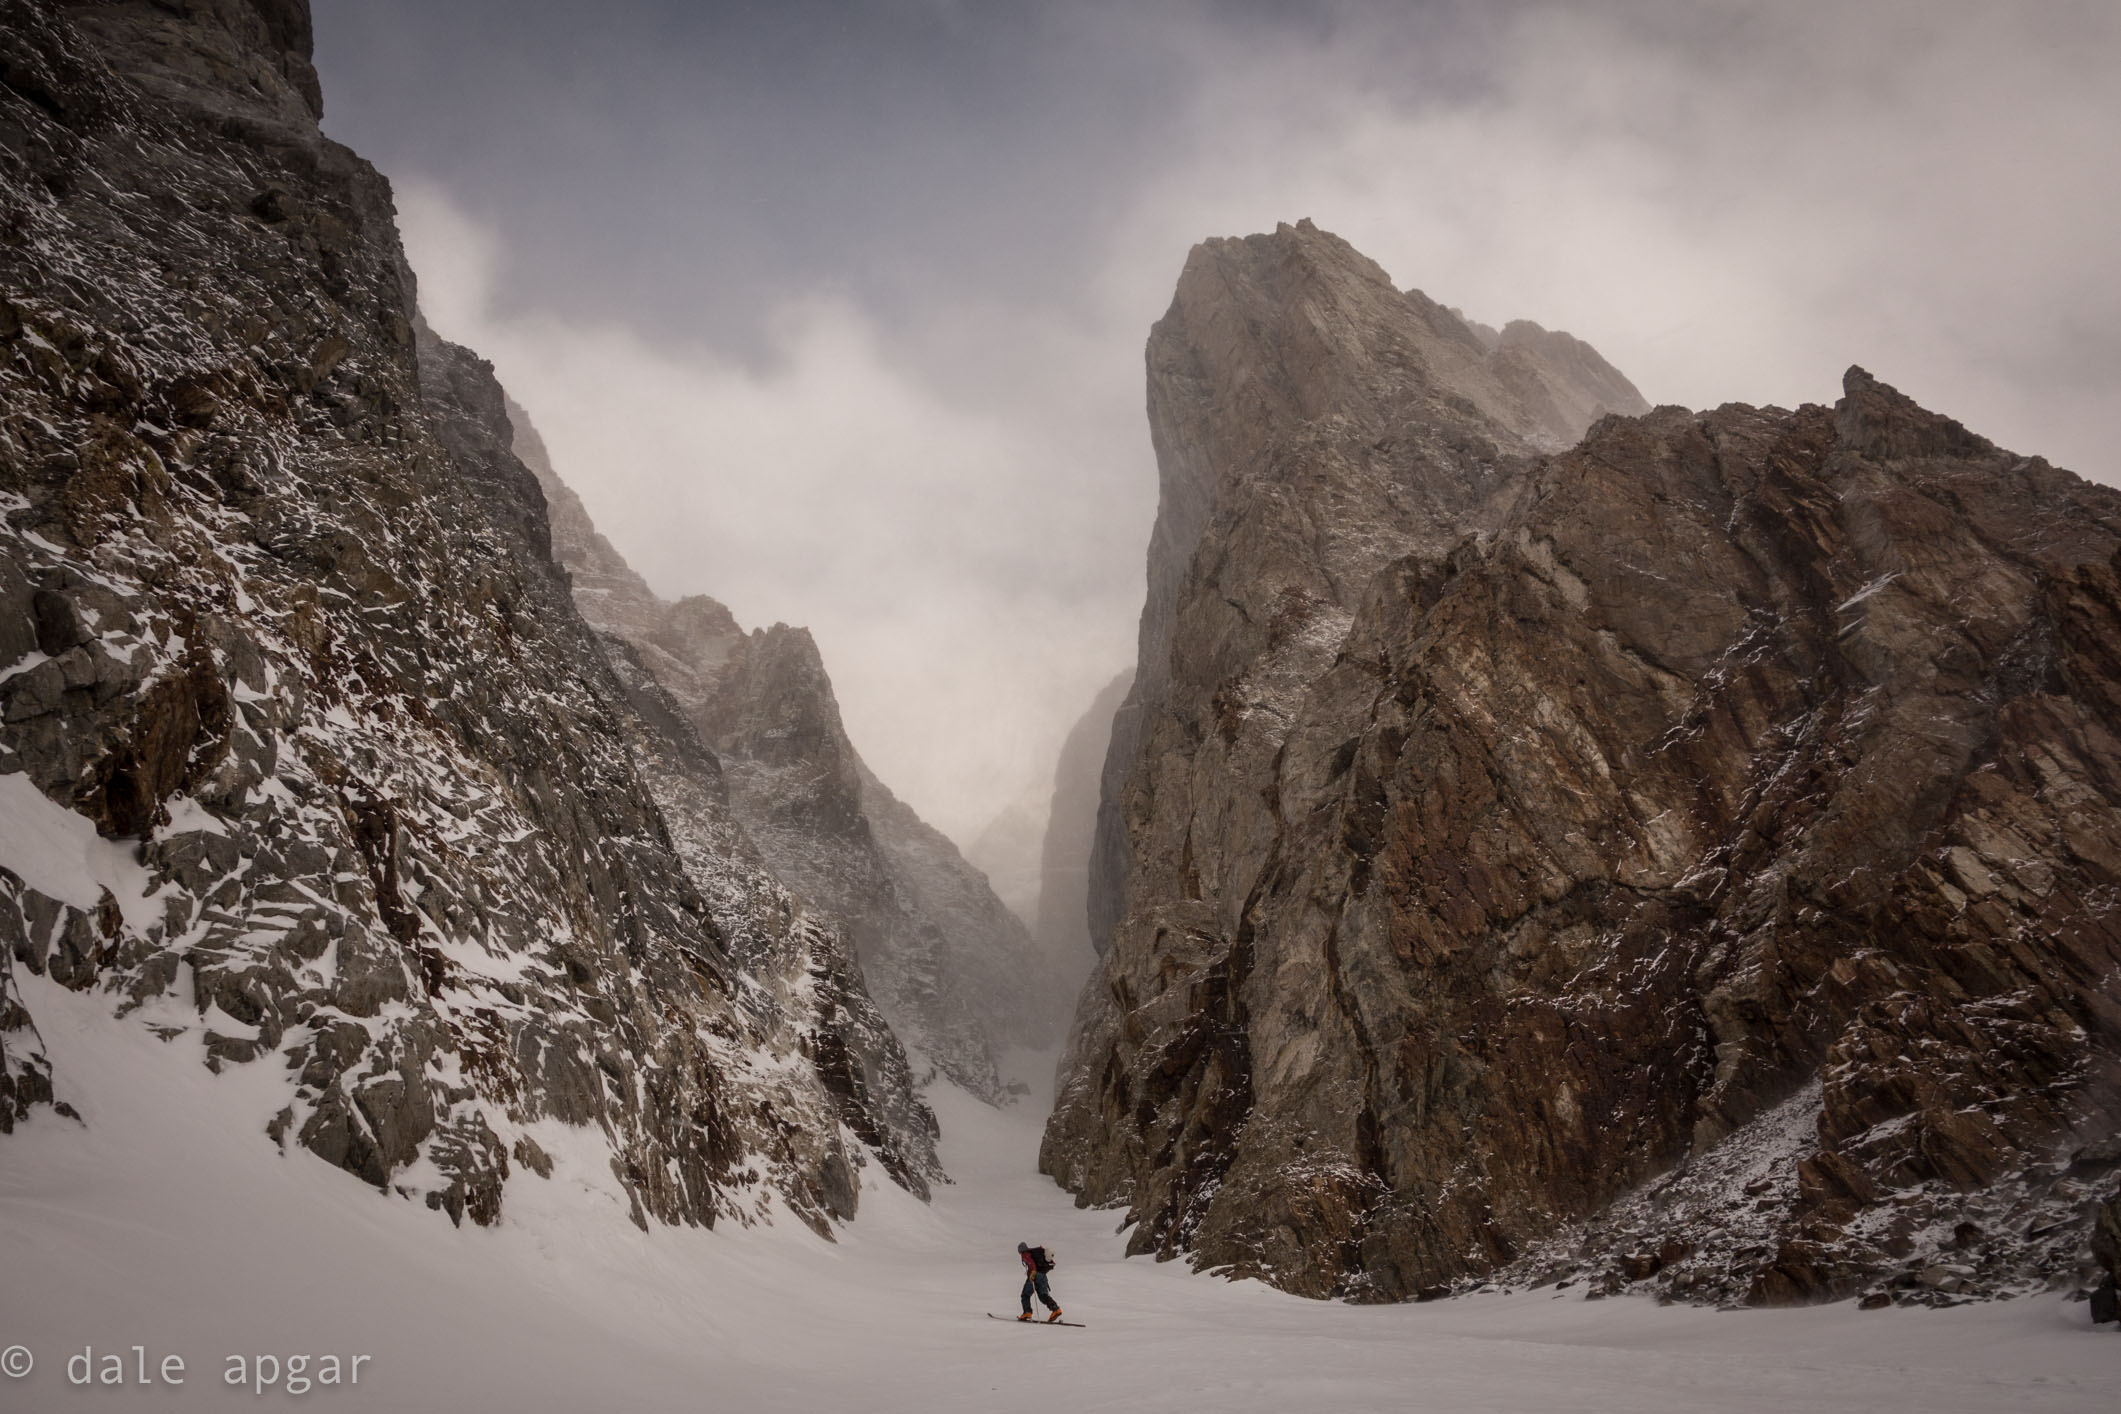 Starting the ascent of the Pinner Couloir